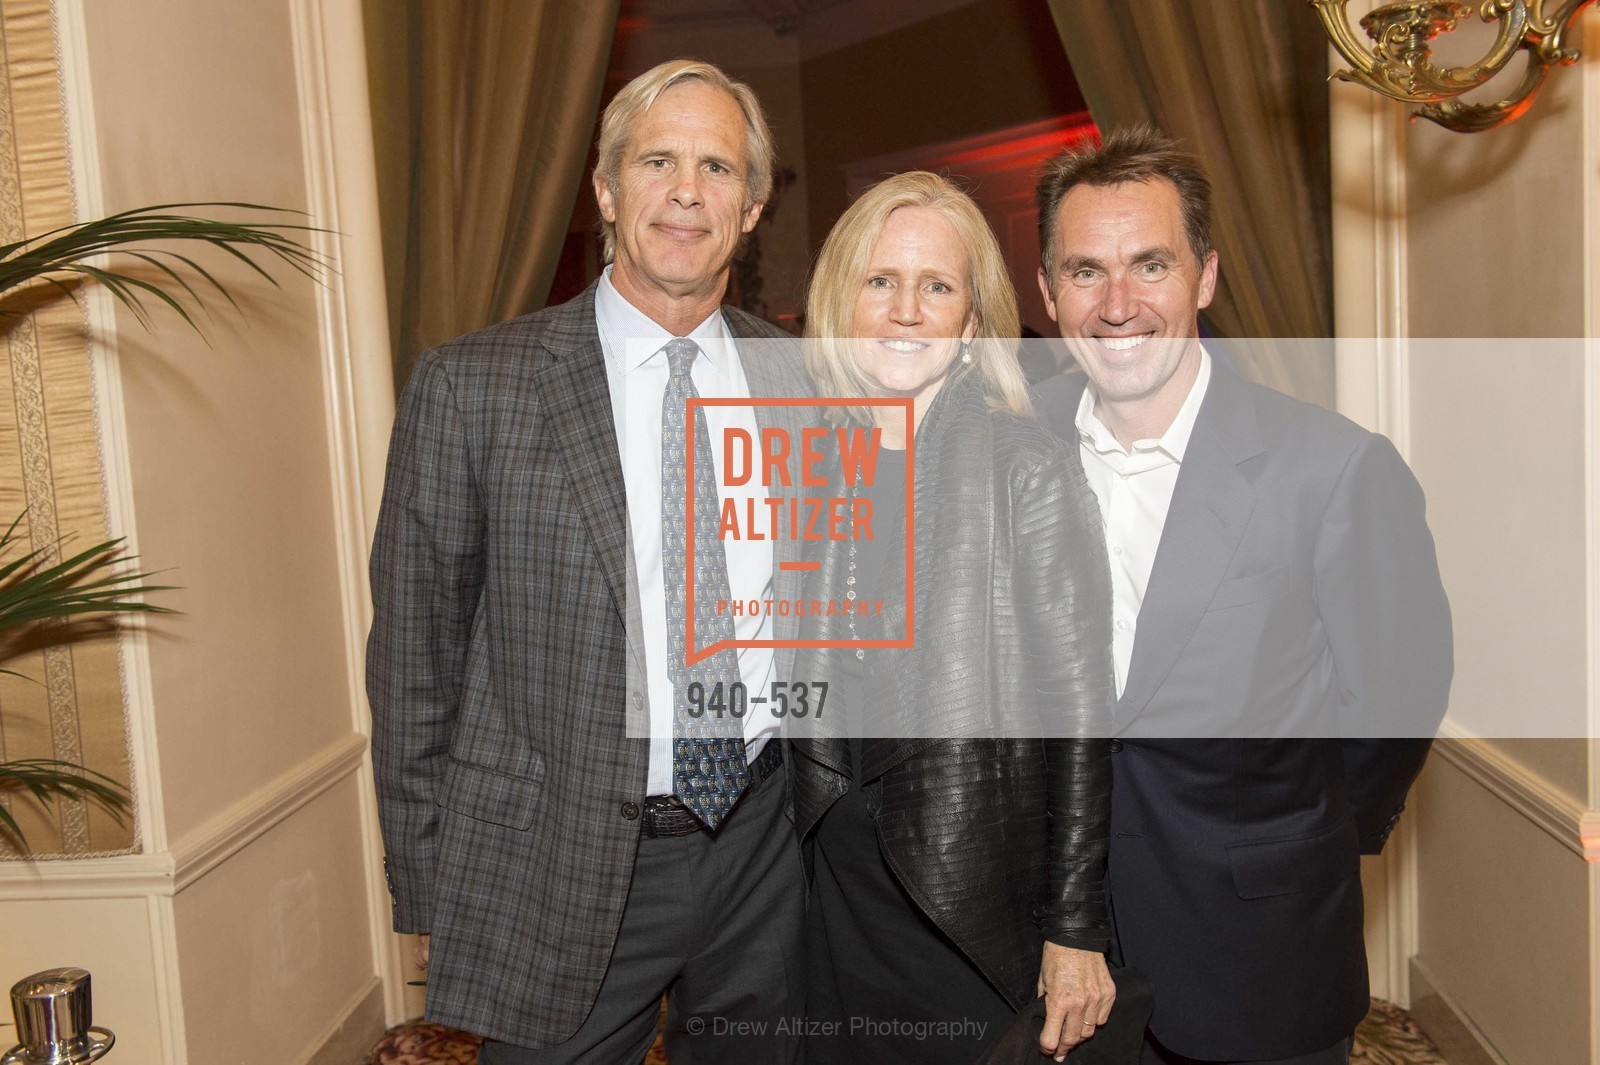 Cindy Shove, Greg Shove, TOP OF THE MARK'S 75TH Anniversary Party, US, November 6th, 2014,Drew Altizer, Drew Altizer Photography, full-service agency, private events, San Francisco photographer, photographer california